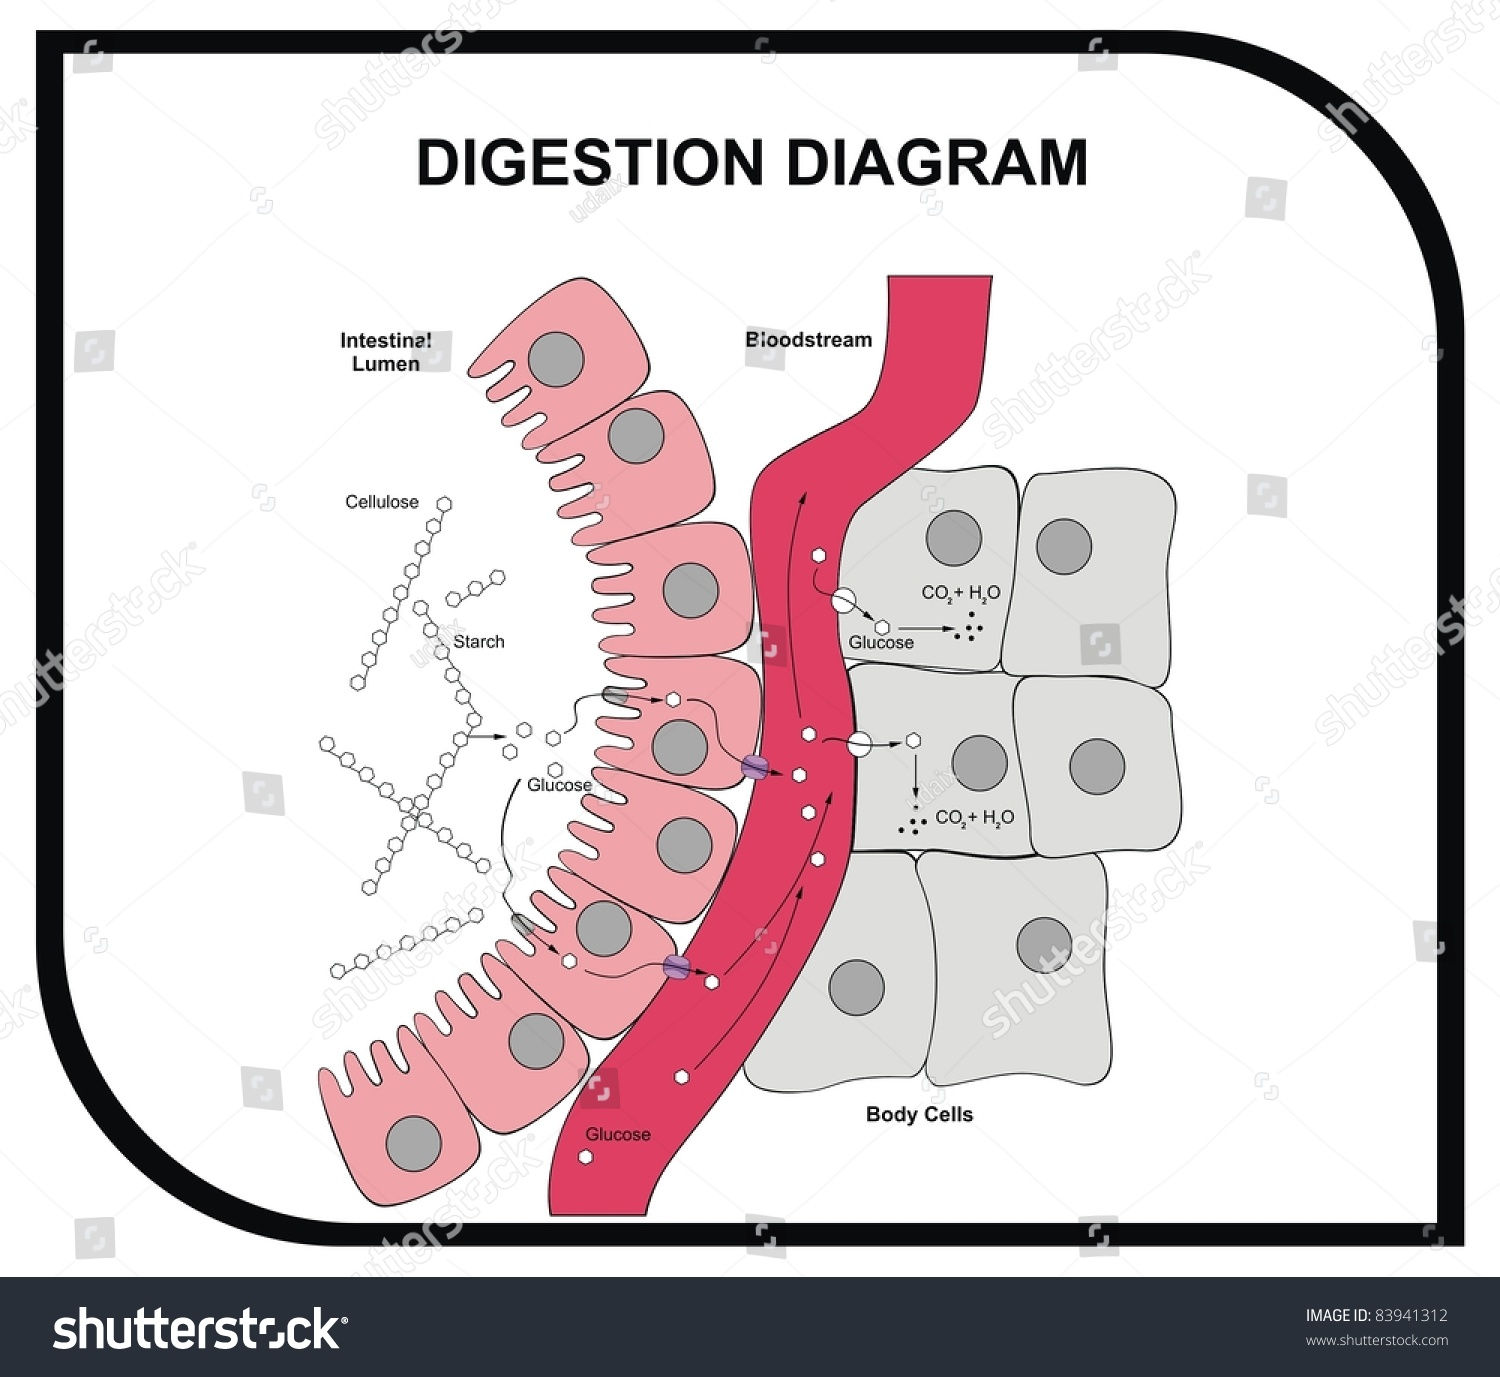 digestion diagram abdominal tissue medical and educational  : digestion diagram - findchart.co